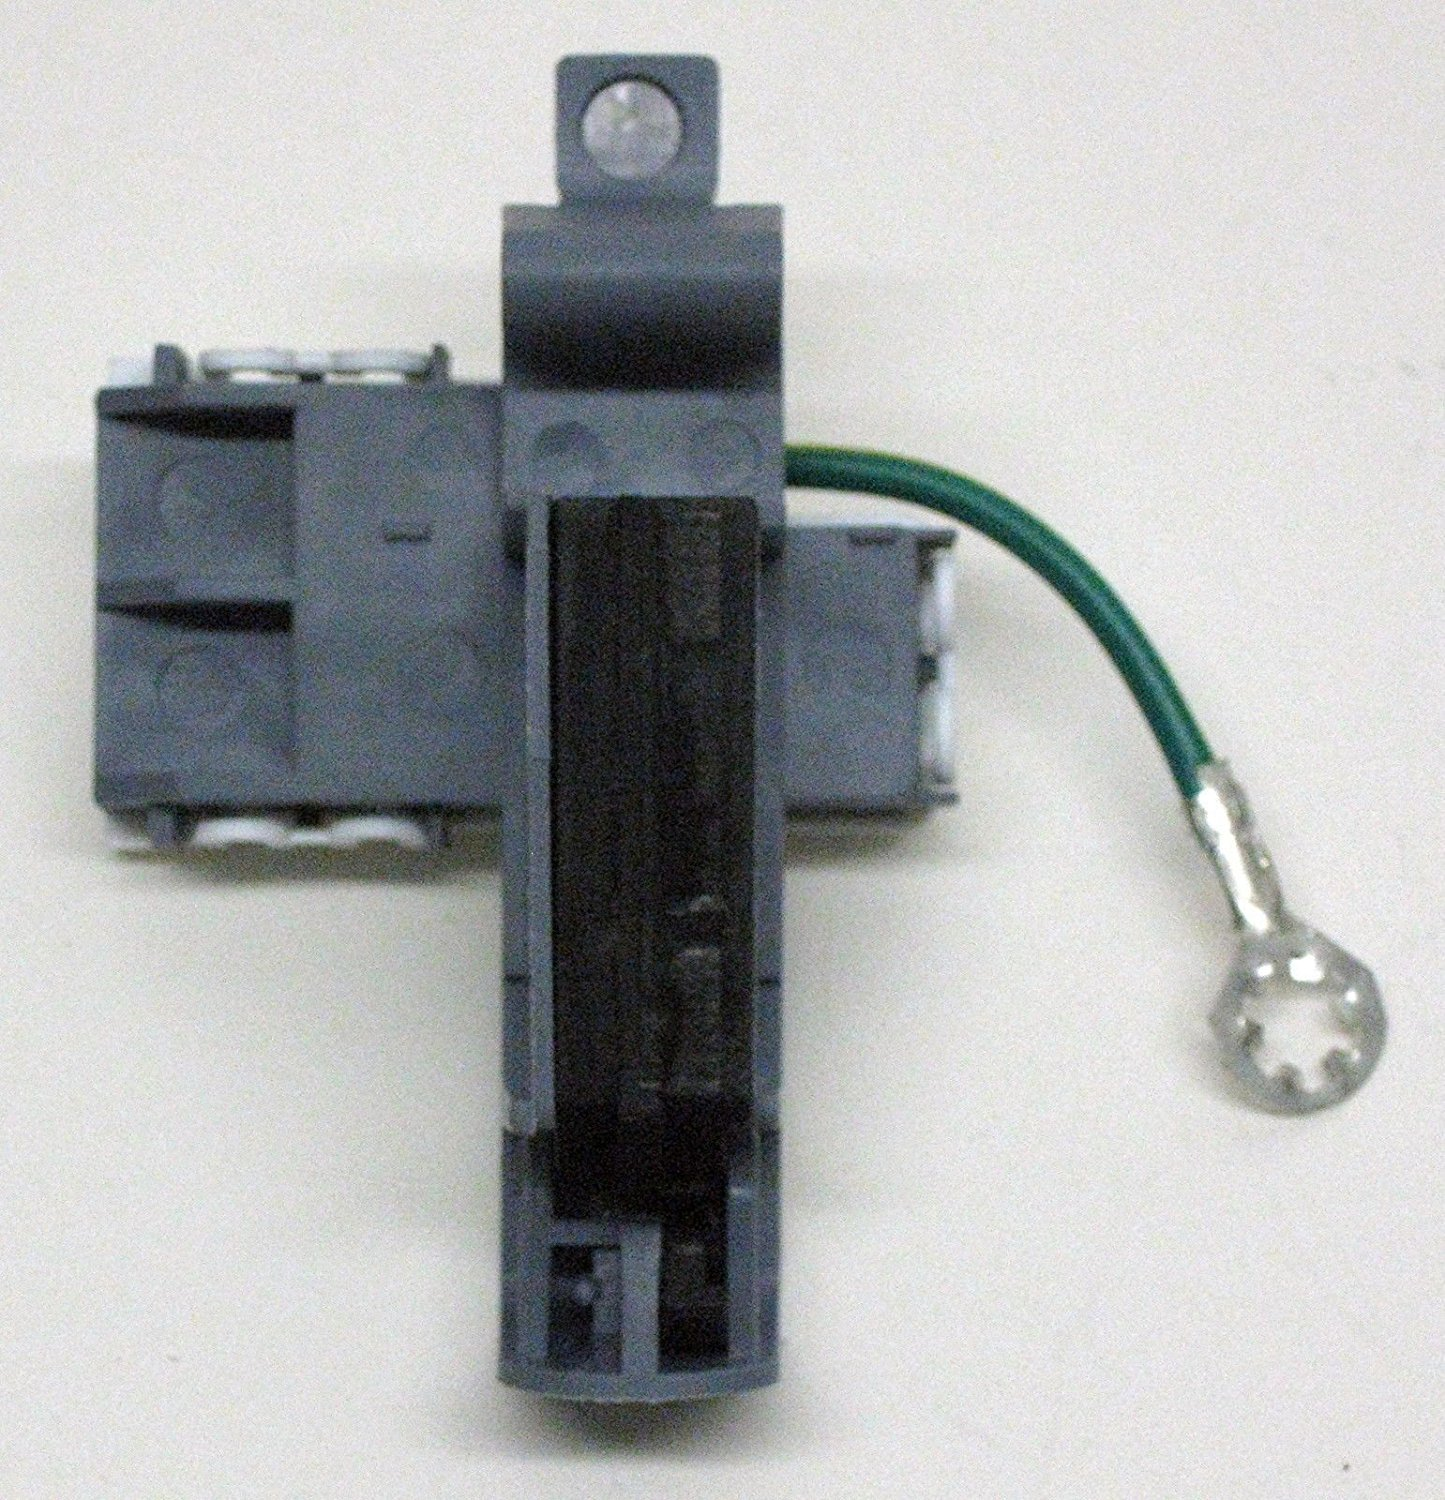 Whirlpool 8318084 Washer Lid Switch Home Improvement Parts Diagram List For Model Wgd6200sw2 Whirlpoolparts Dryer